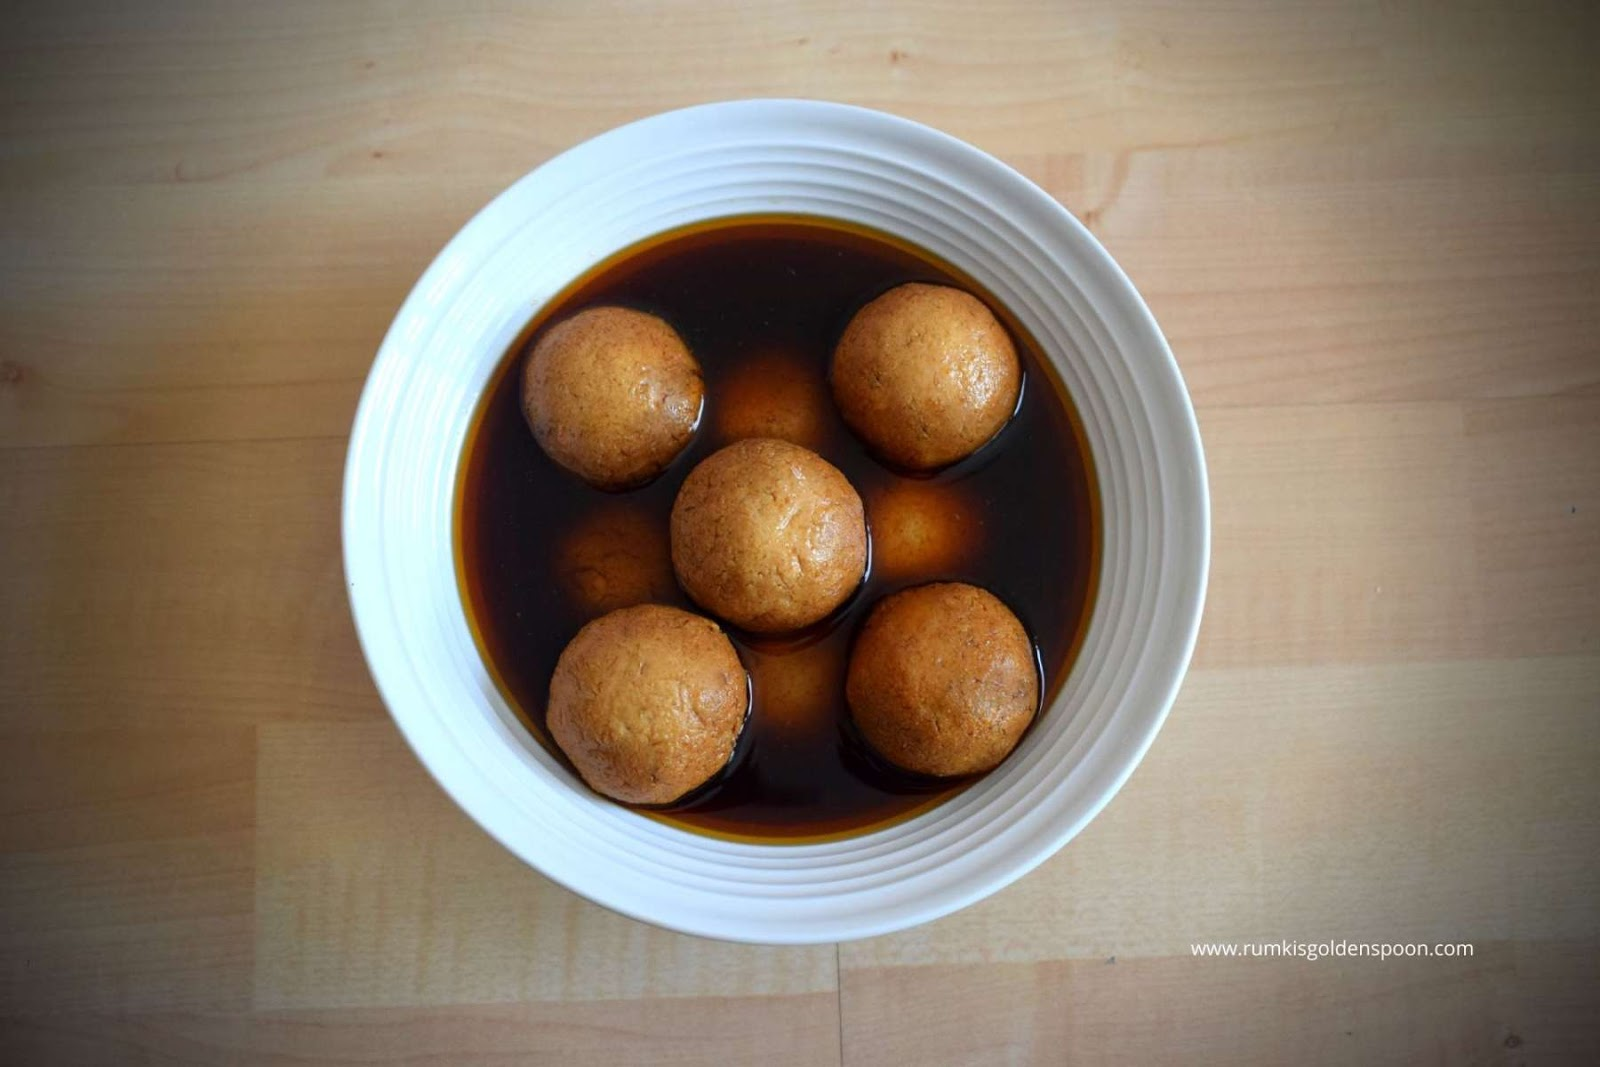 patali gur recipes, sweets with jaggery, jaggery sweet recipes, date palm jaggery recipes, rasgulla, gur rasgulla, rasgulla recipe, rosogolla, how to prepare rasgulla,bengali sweet,indian dessert recipe, Nolen Gur Rosogolla, Nolen Gurer Rosogolla, Rumki's Golden Spoon